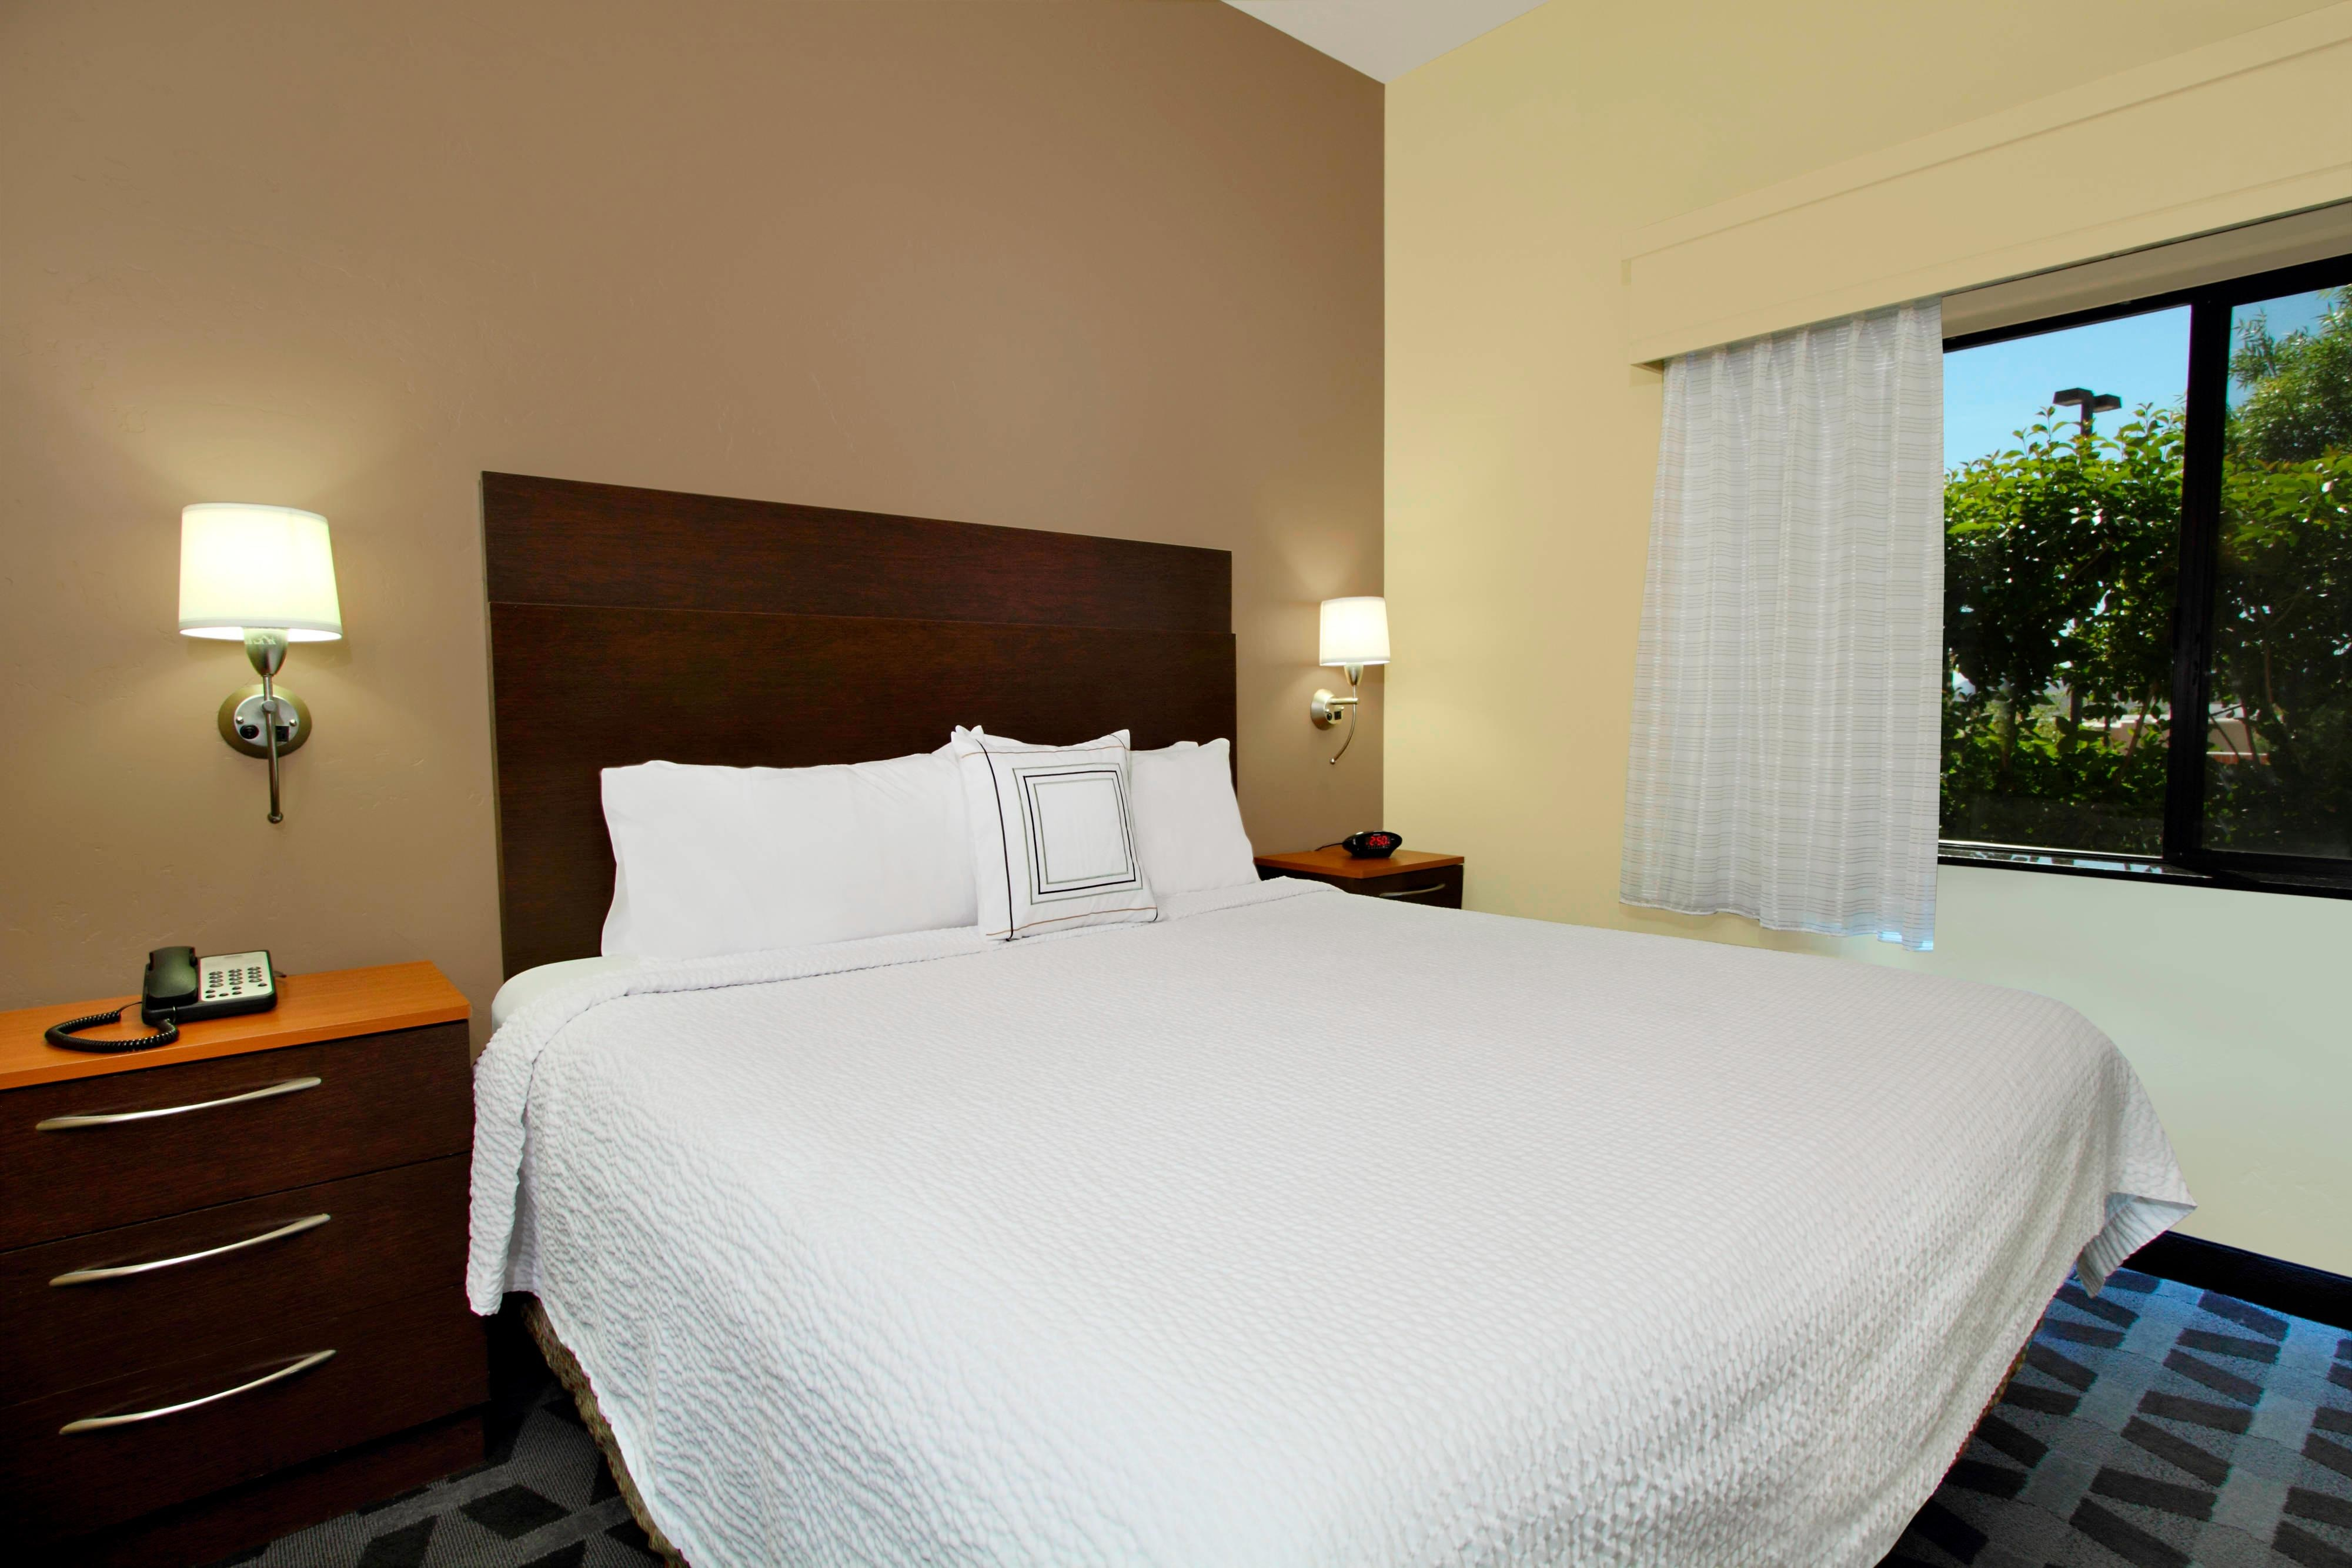 How To Promote Hotel Rooms In Local Market